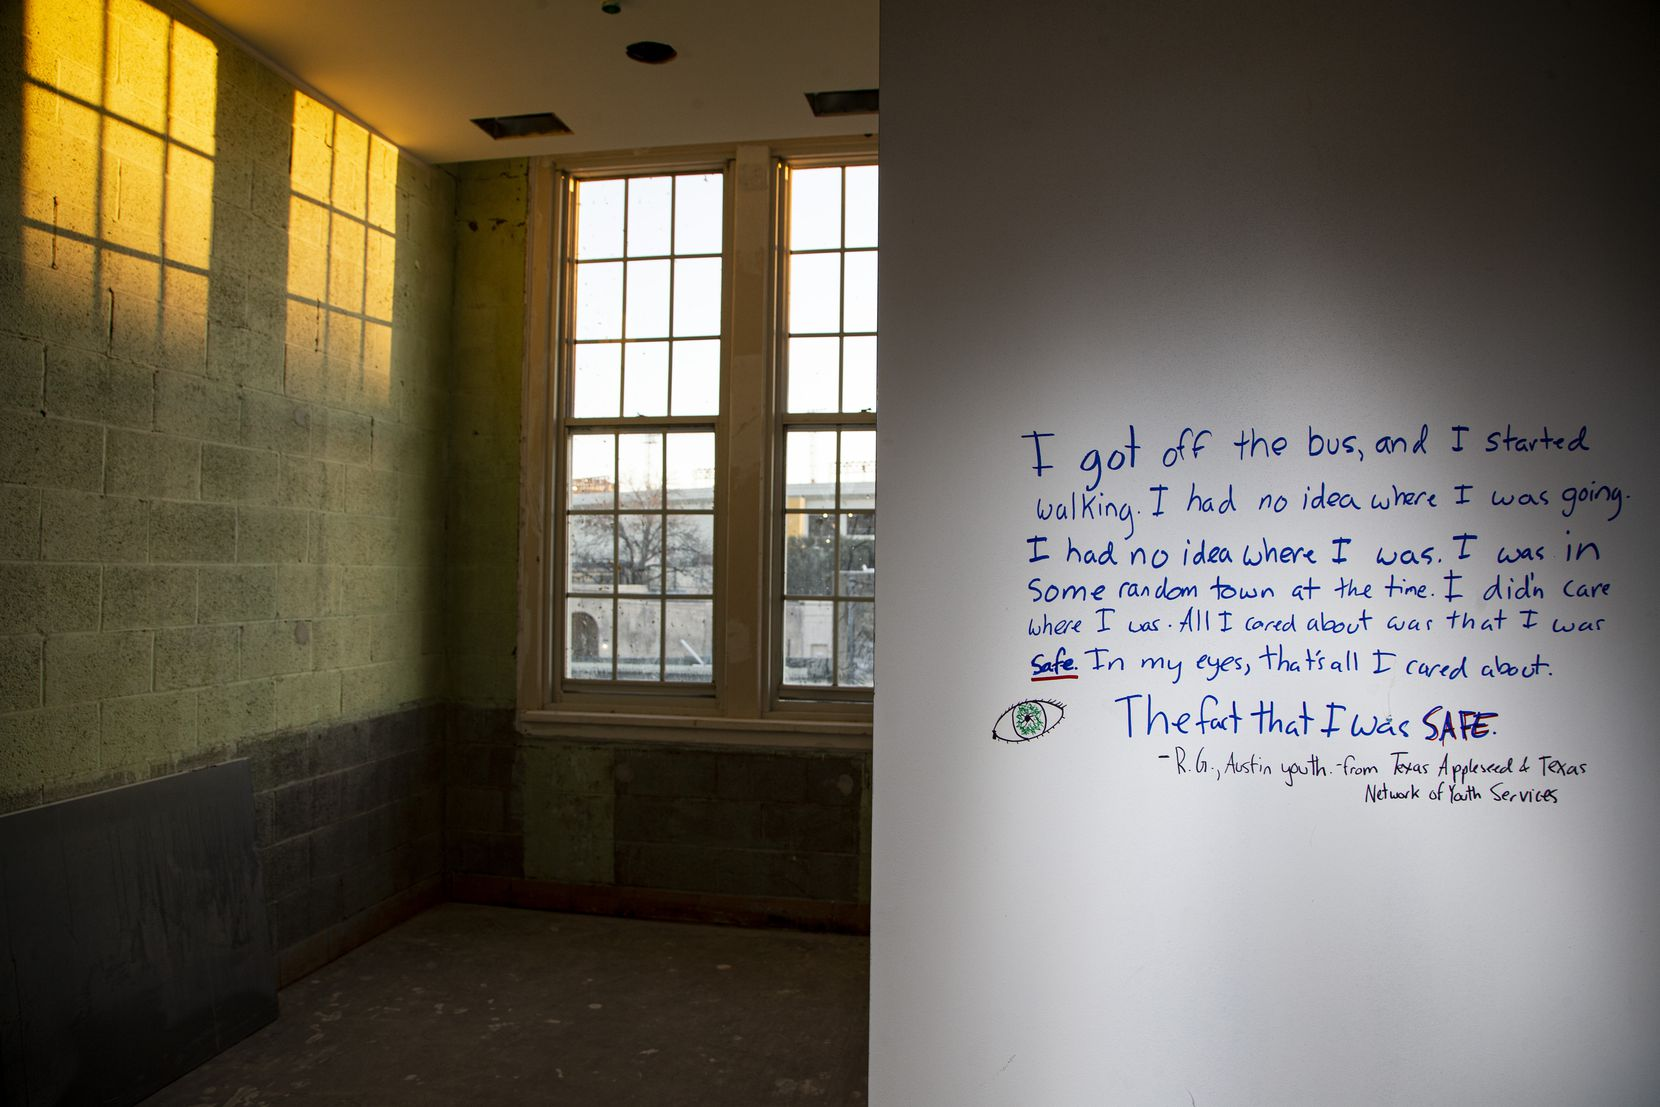 A vignette written on the wall of a dormitory by a student who had experienced housing instability at the Fannie C. Harris Youth Center in Dallas, Tuesday, December 17, 2019. The youth center will serve as a 35-bed shelter to DISD students who are experiencing housing instability.